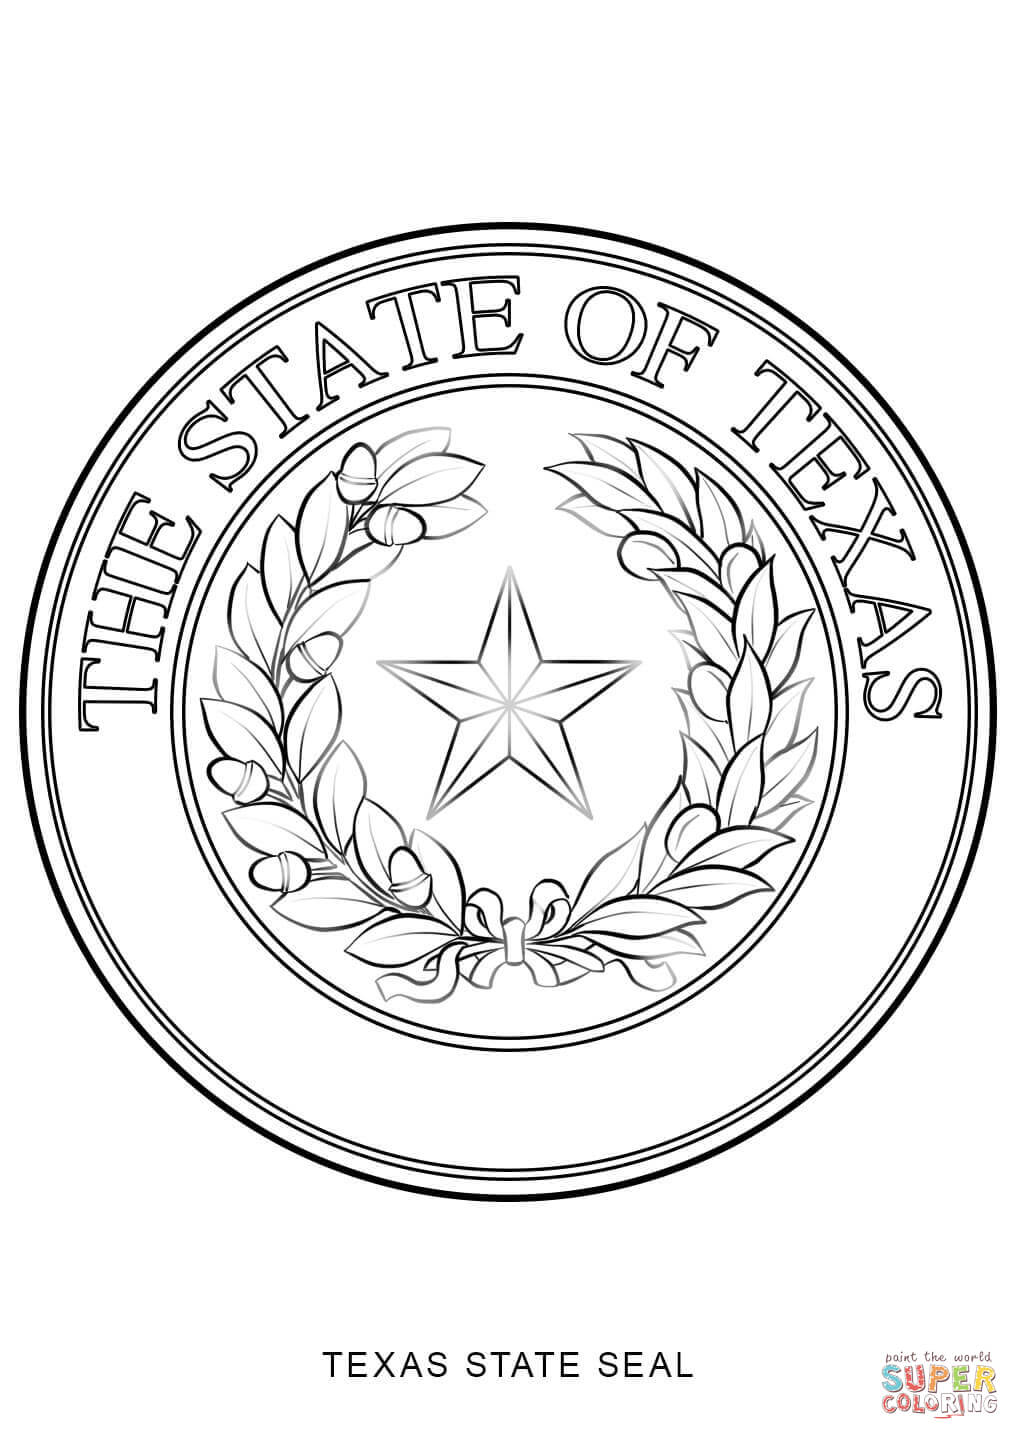 Texas state symbols coloring pages coloring home for Arizona state seal coloring page